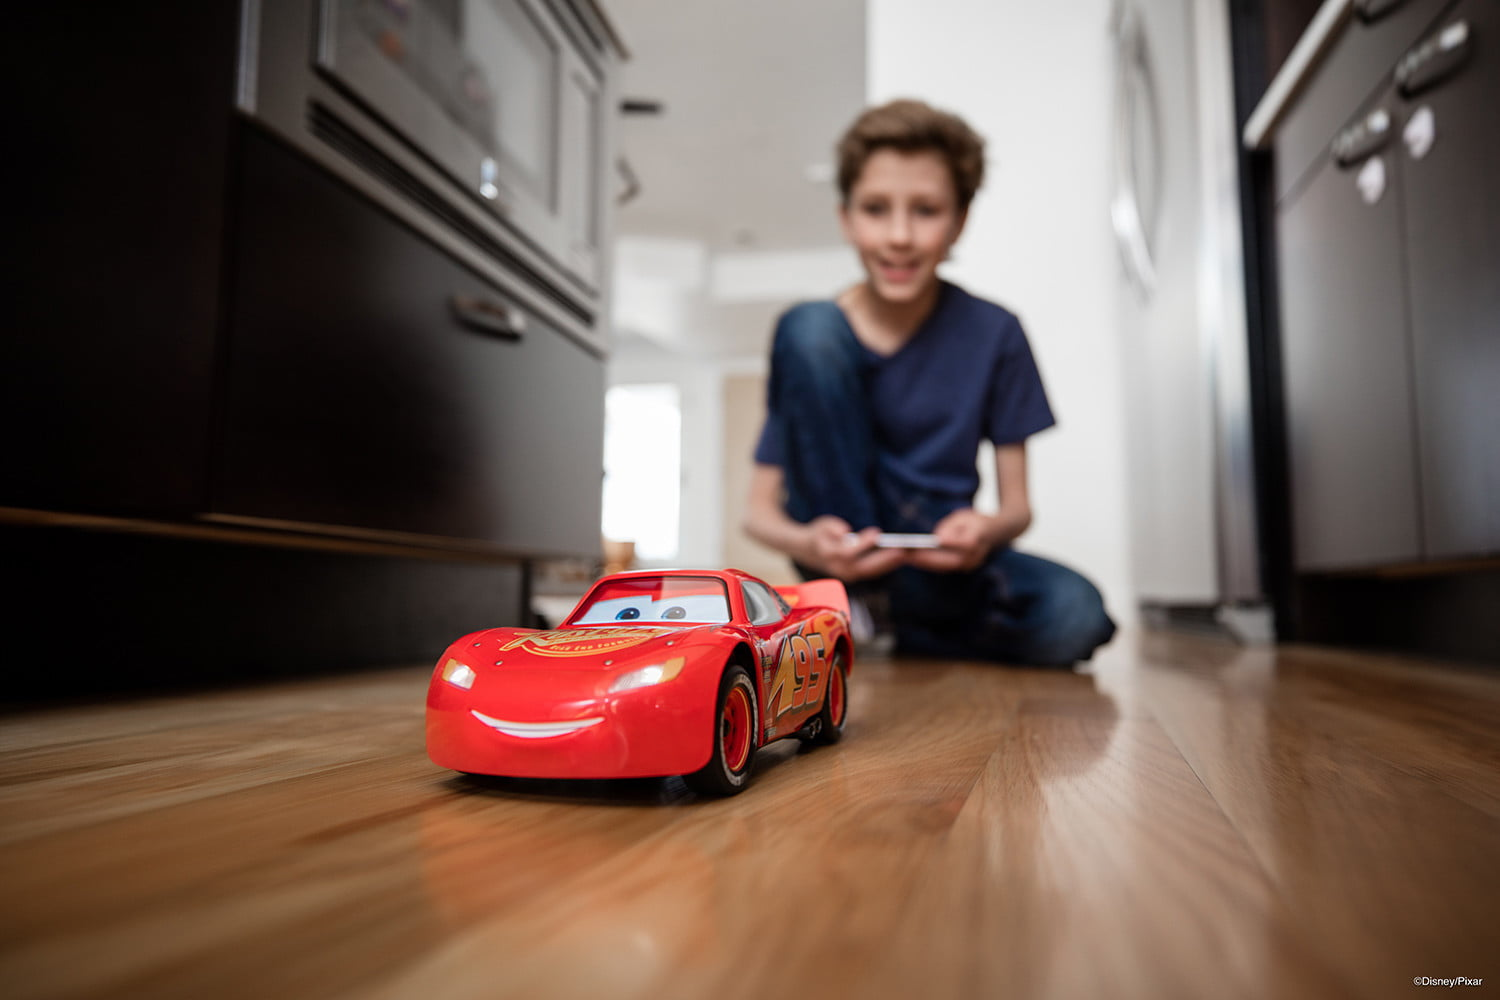 sphero s ultimate lightning mcqueen is a toy racing car for the ages